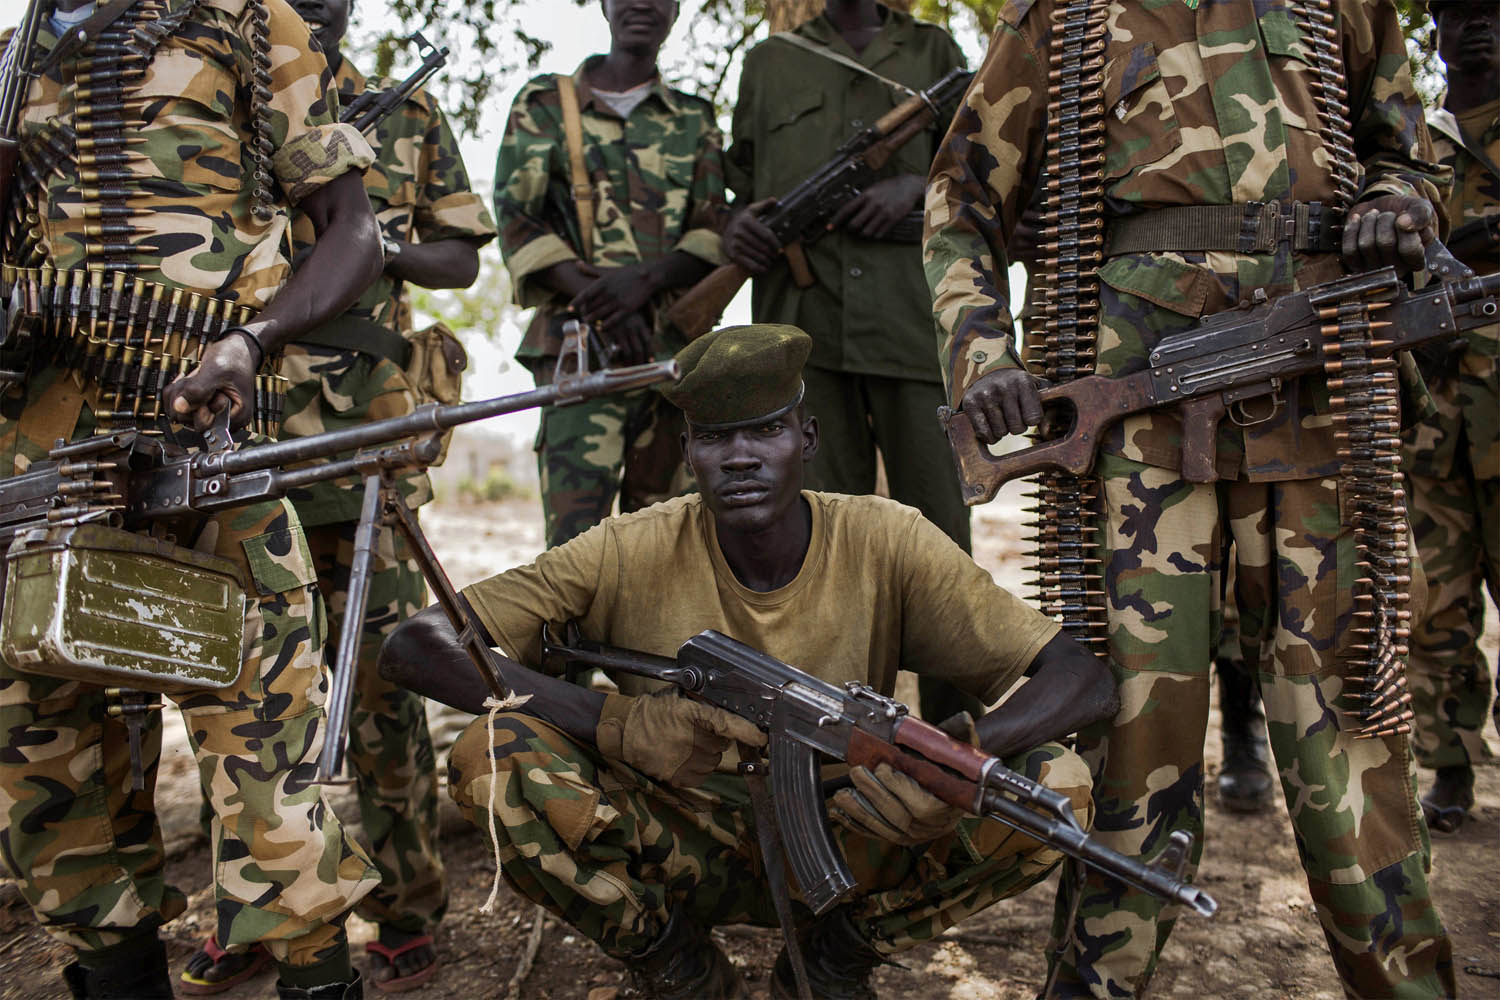 Feb. 15, 2014. Sudan People's Liberation Army (SPLA) government soldiers from the 2nd Battalion pose at the SPLA headquarters in Nyang, in the county of Yirol East, South Sudan.